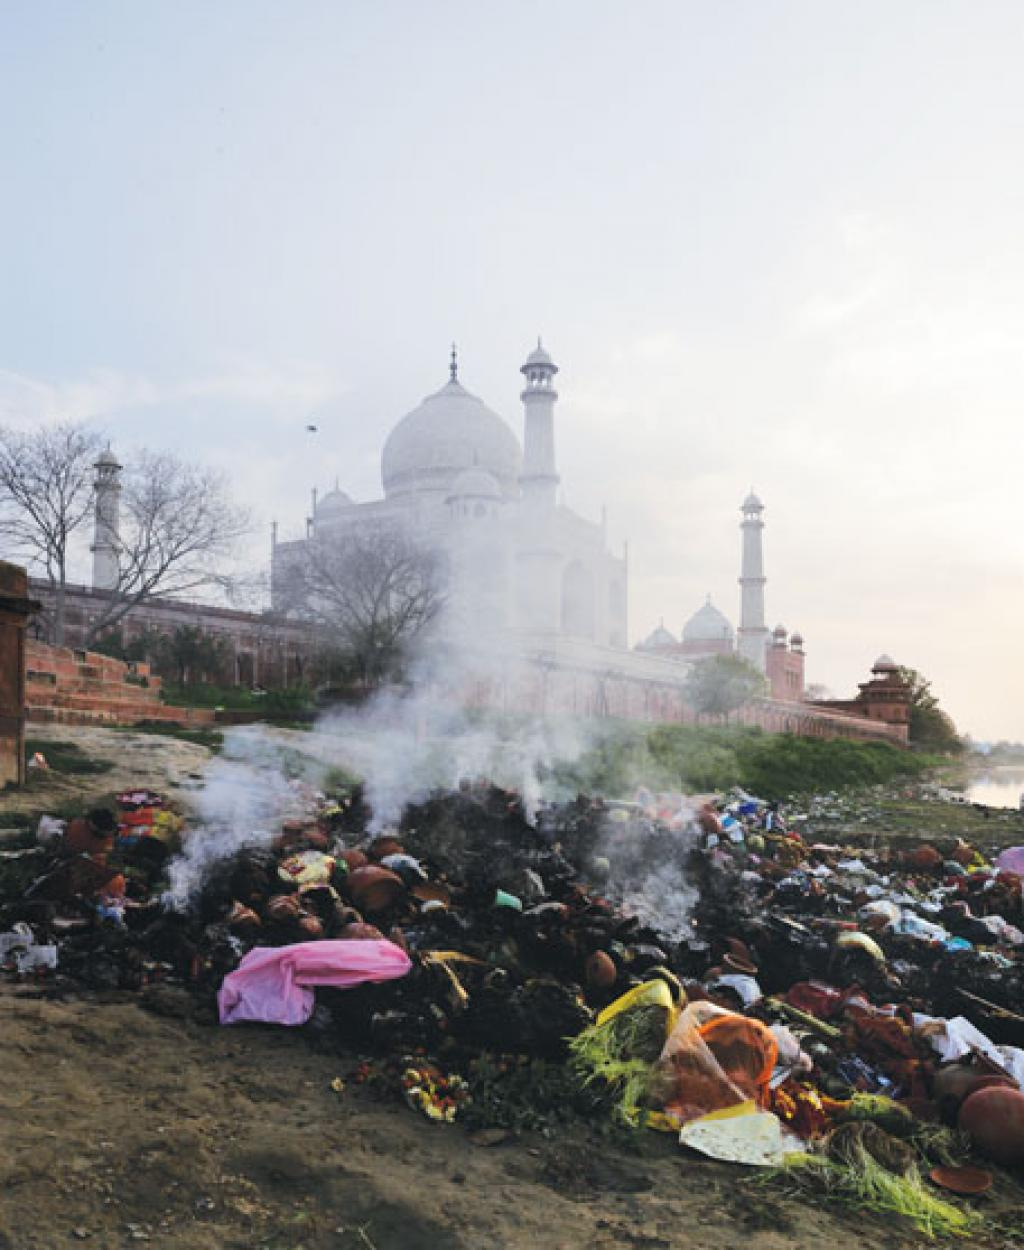 A pile of burning trash near the Taj Mahal in Agra